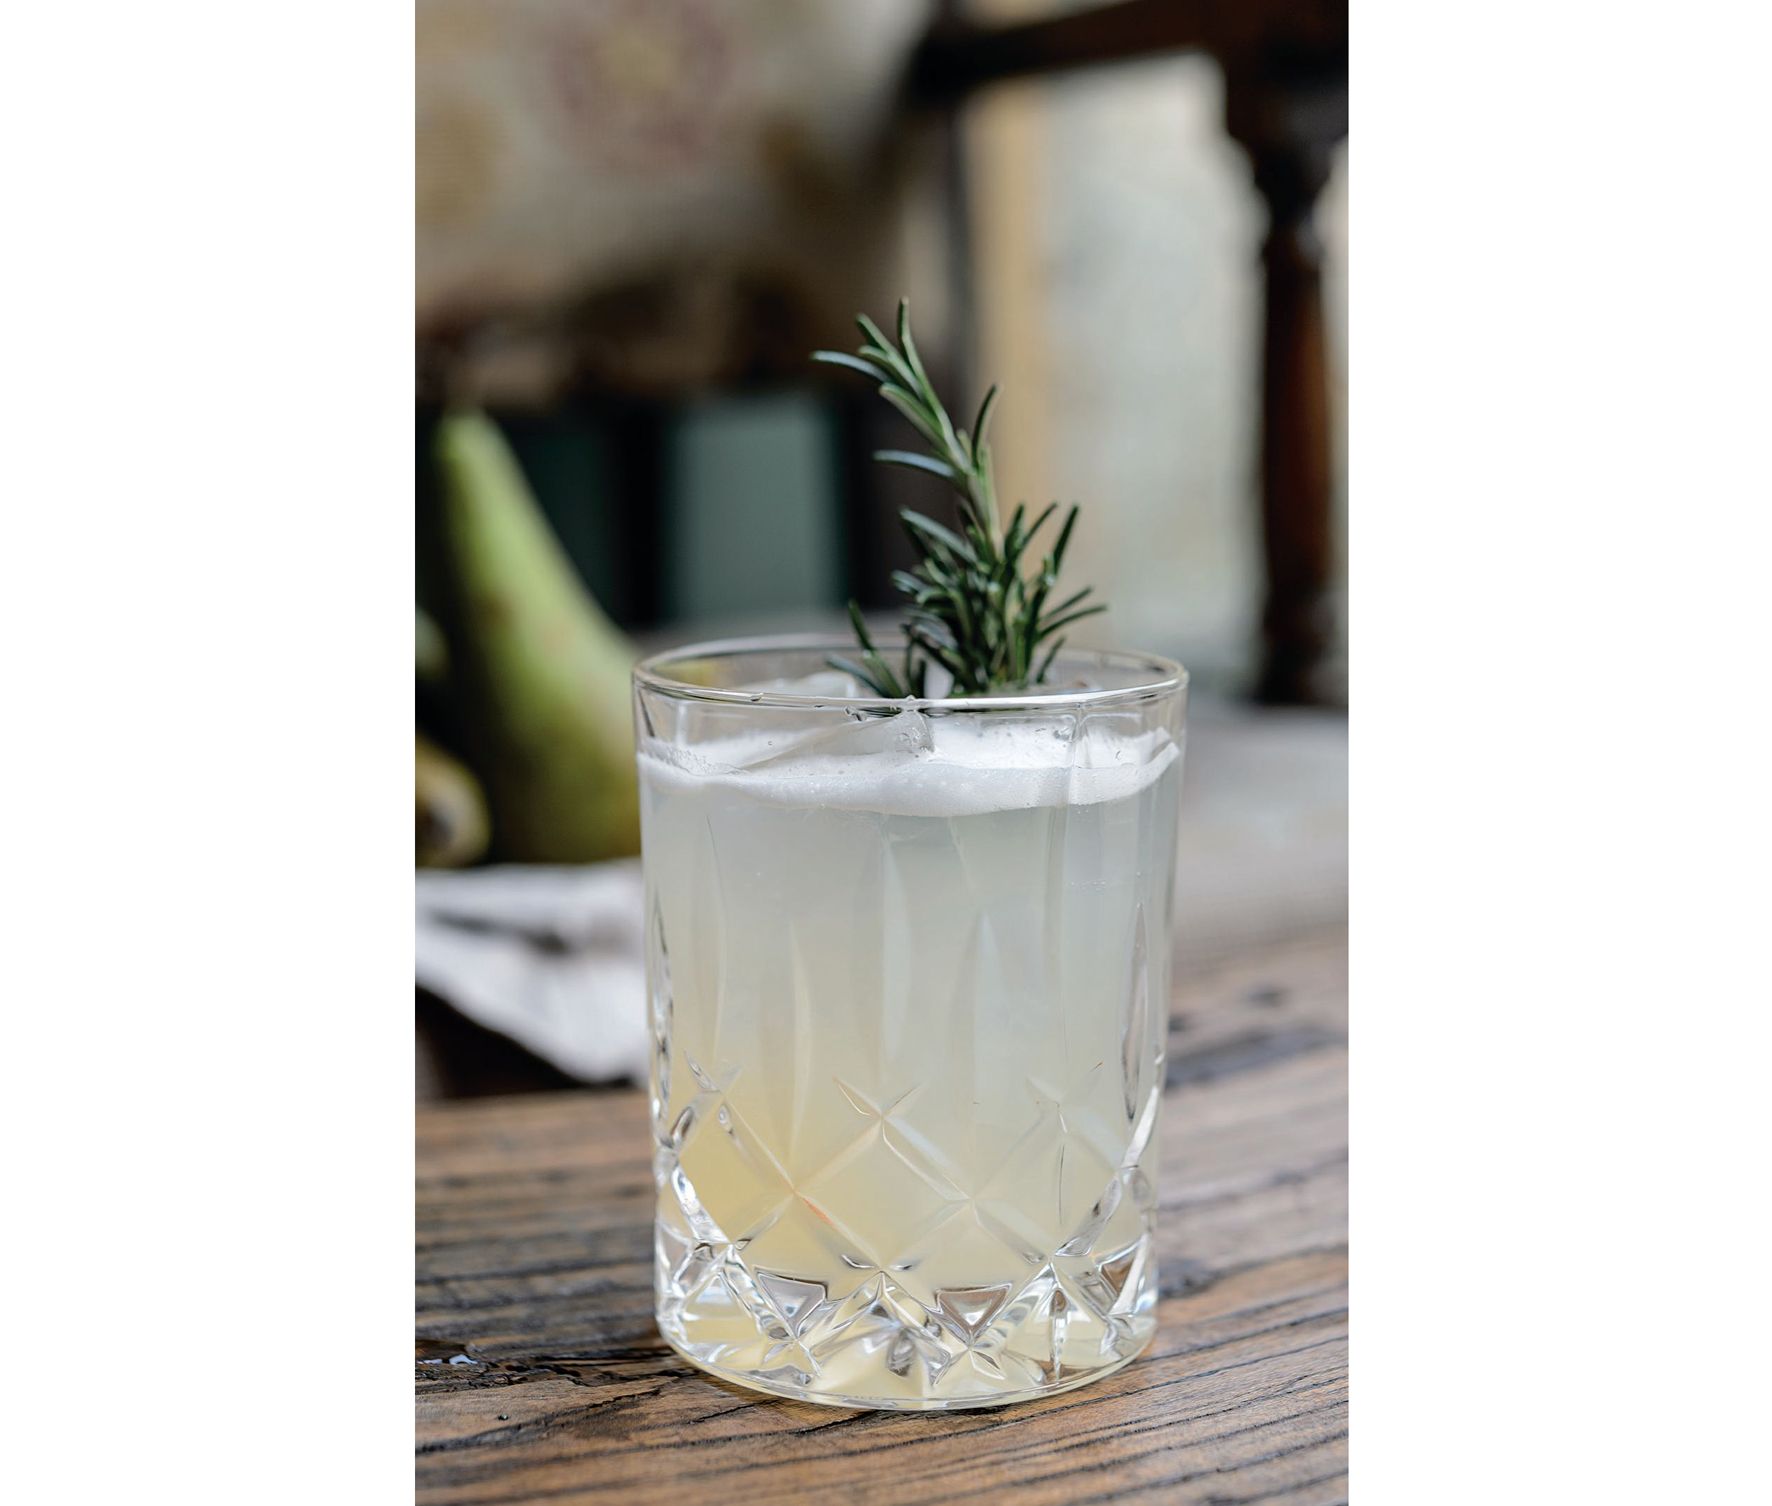 Pear and Rosemary on the Rocks